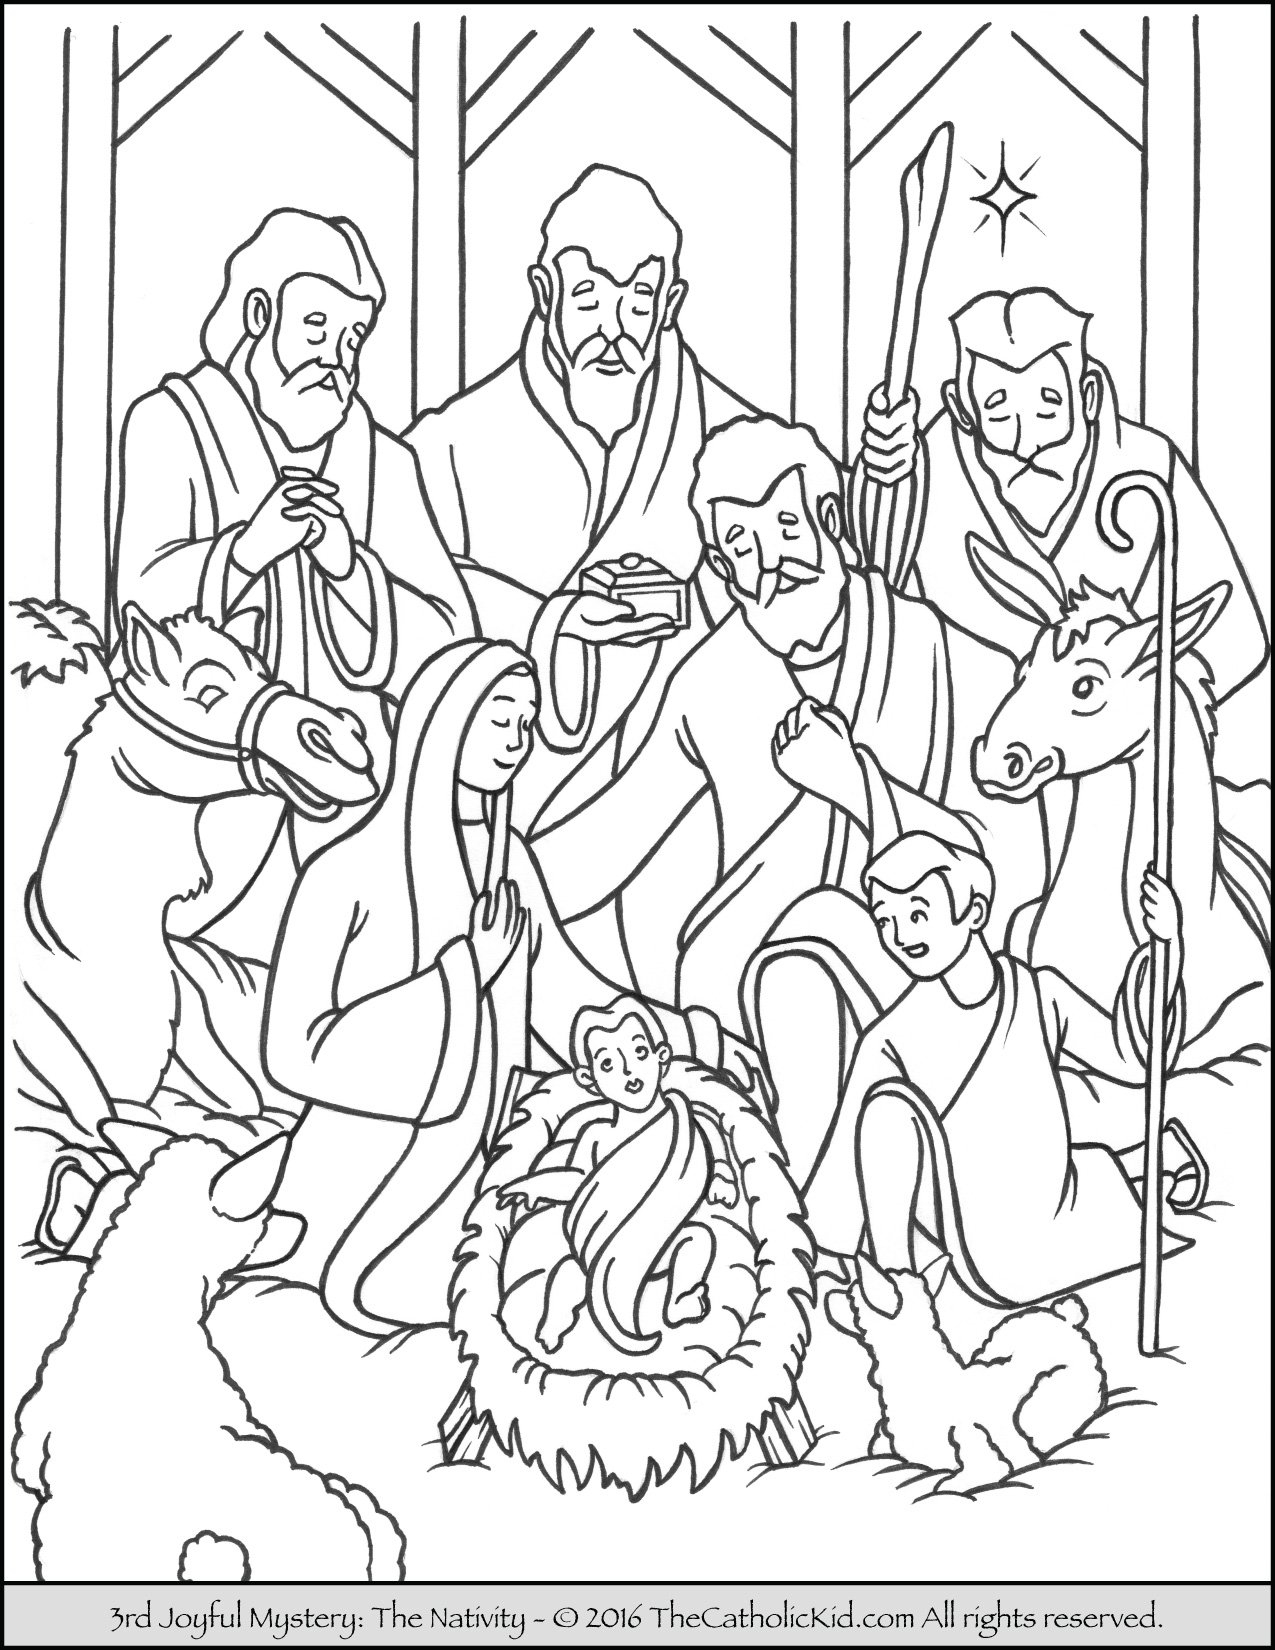 joyful mysteries rosary coloring pages nativity - Nativity Coloring Pages For Kids